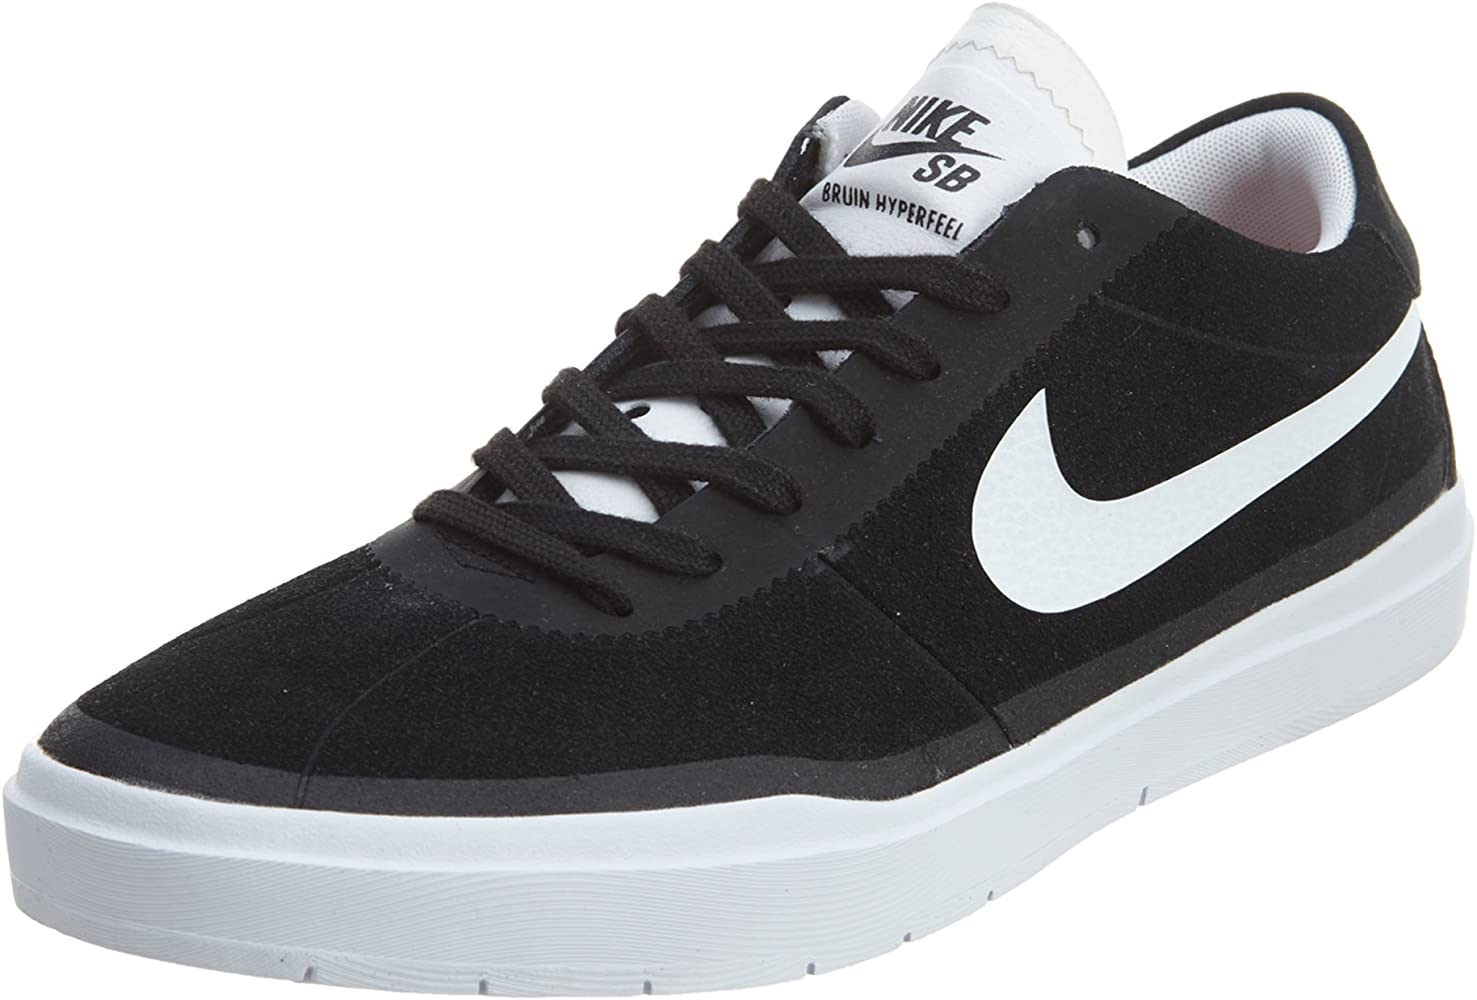 Destino camuflaje sostén  Amazon.com | NIKE Men's Bruin SB Hyperfeel, Black/White-White, 6 M US |  Shoes